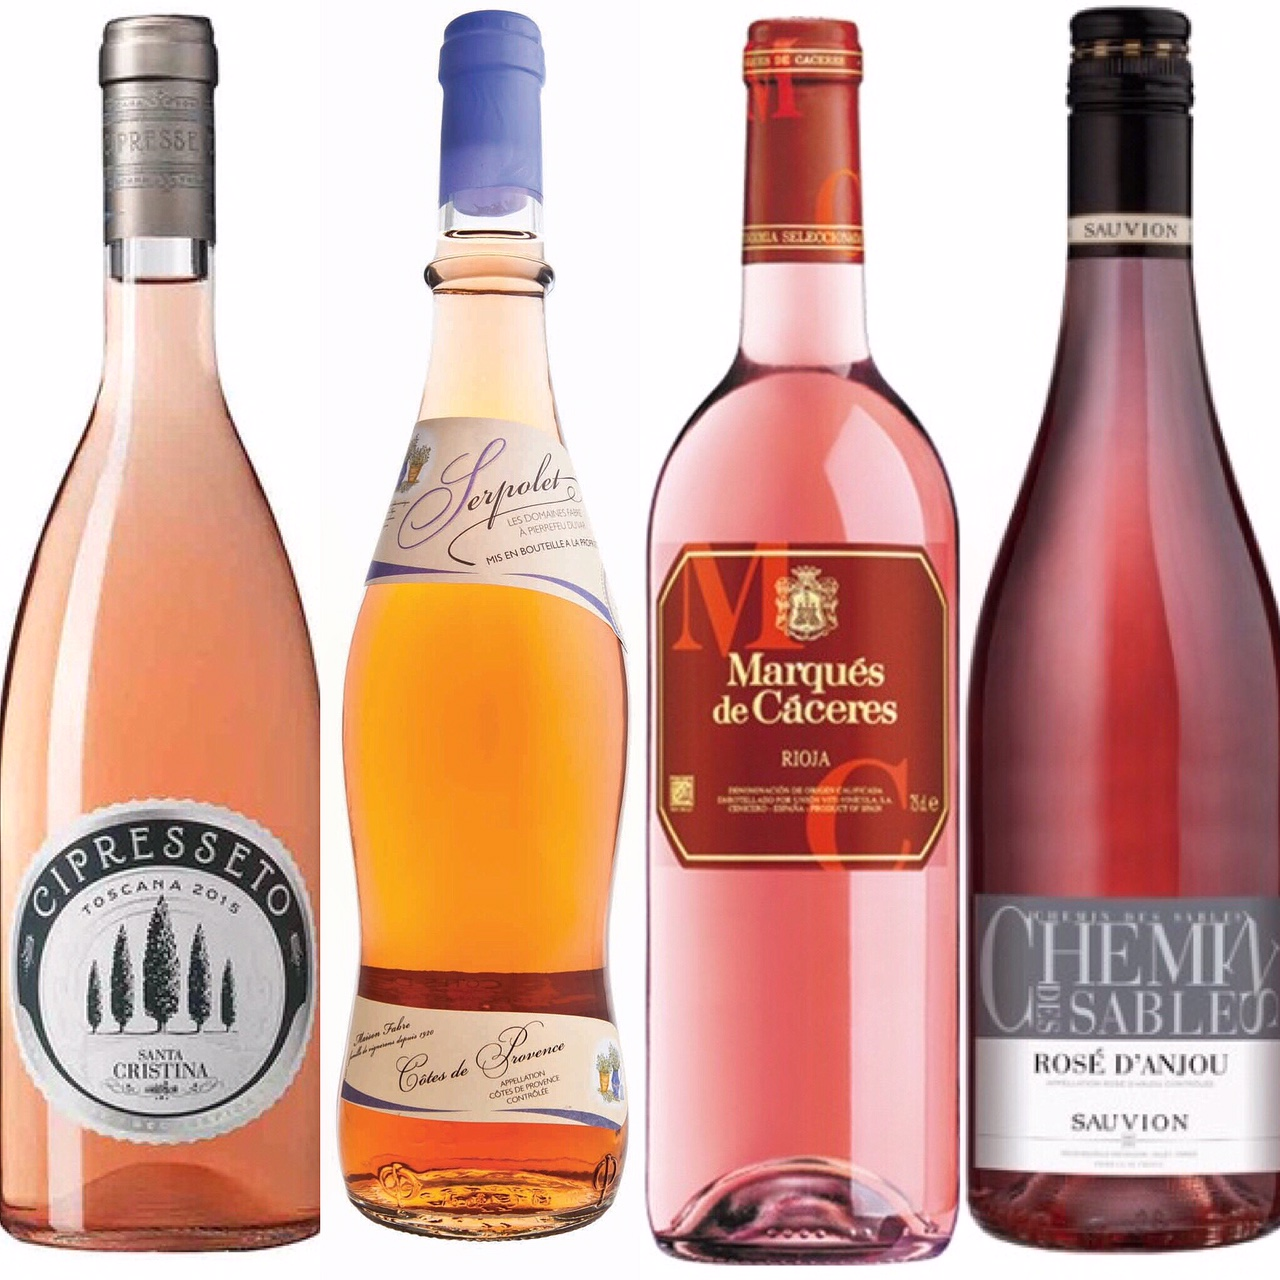 Top 4 rose wines under AED100 - #FooDivaVino - Wines in UAE